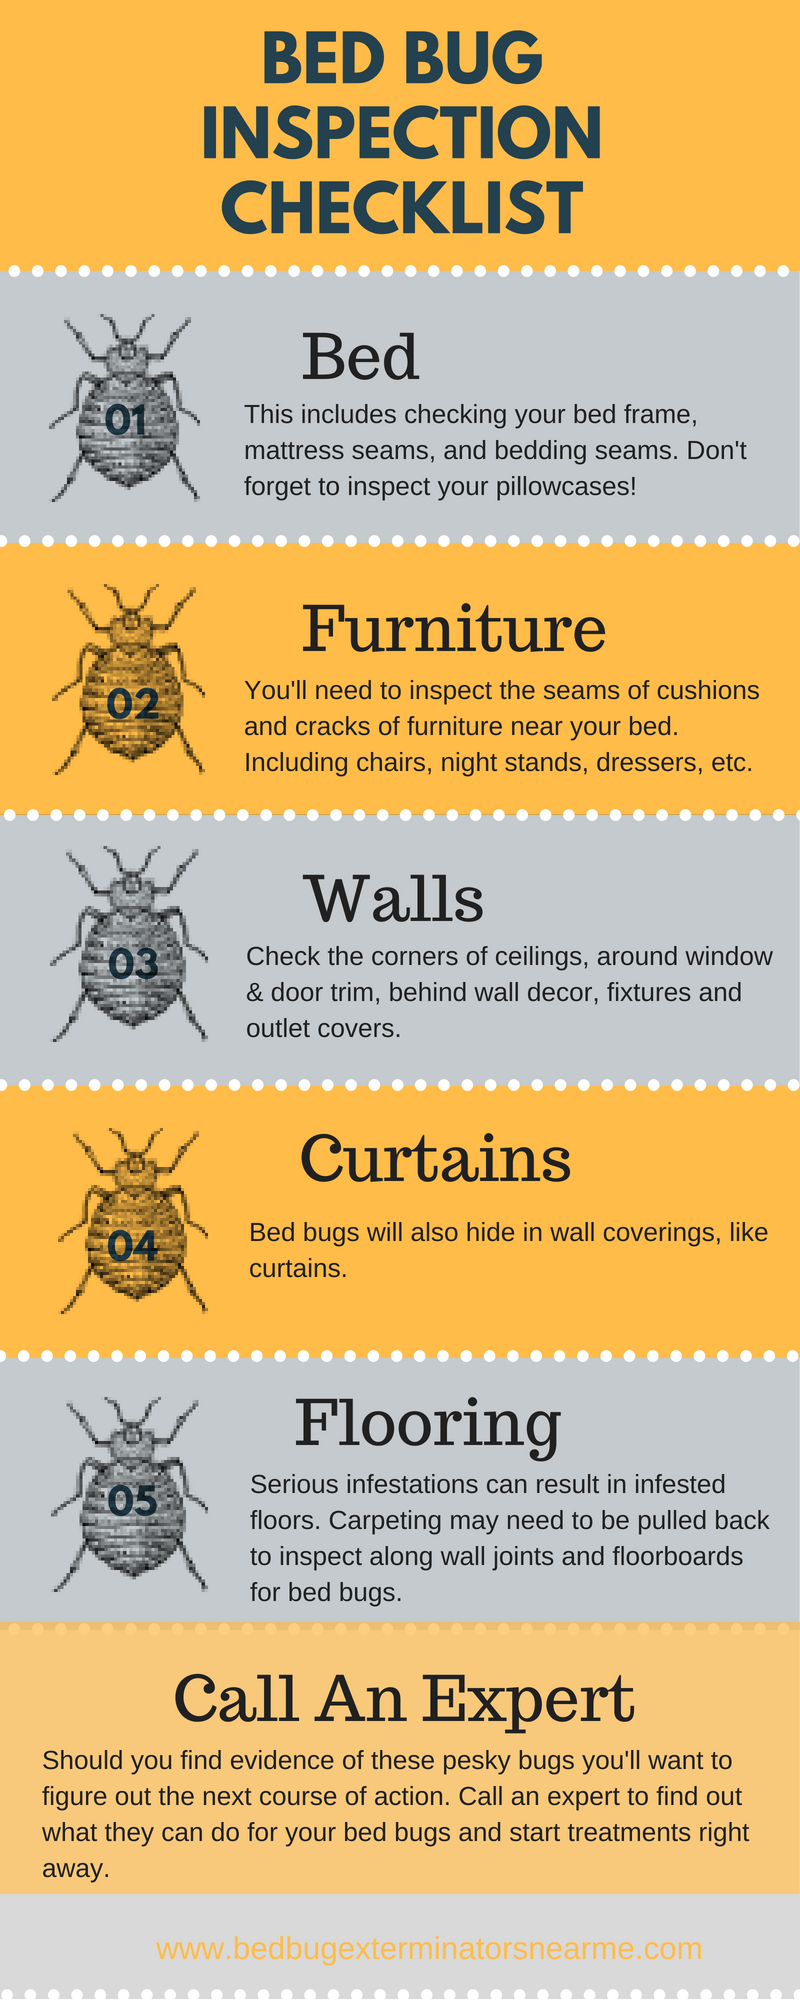 Bed Bug Inspection Checklist Infographic Bed Bugs Inspection Checklist Essential Oil Bug Repellent